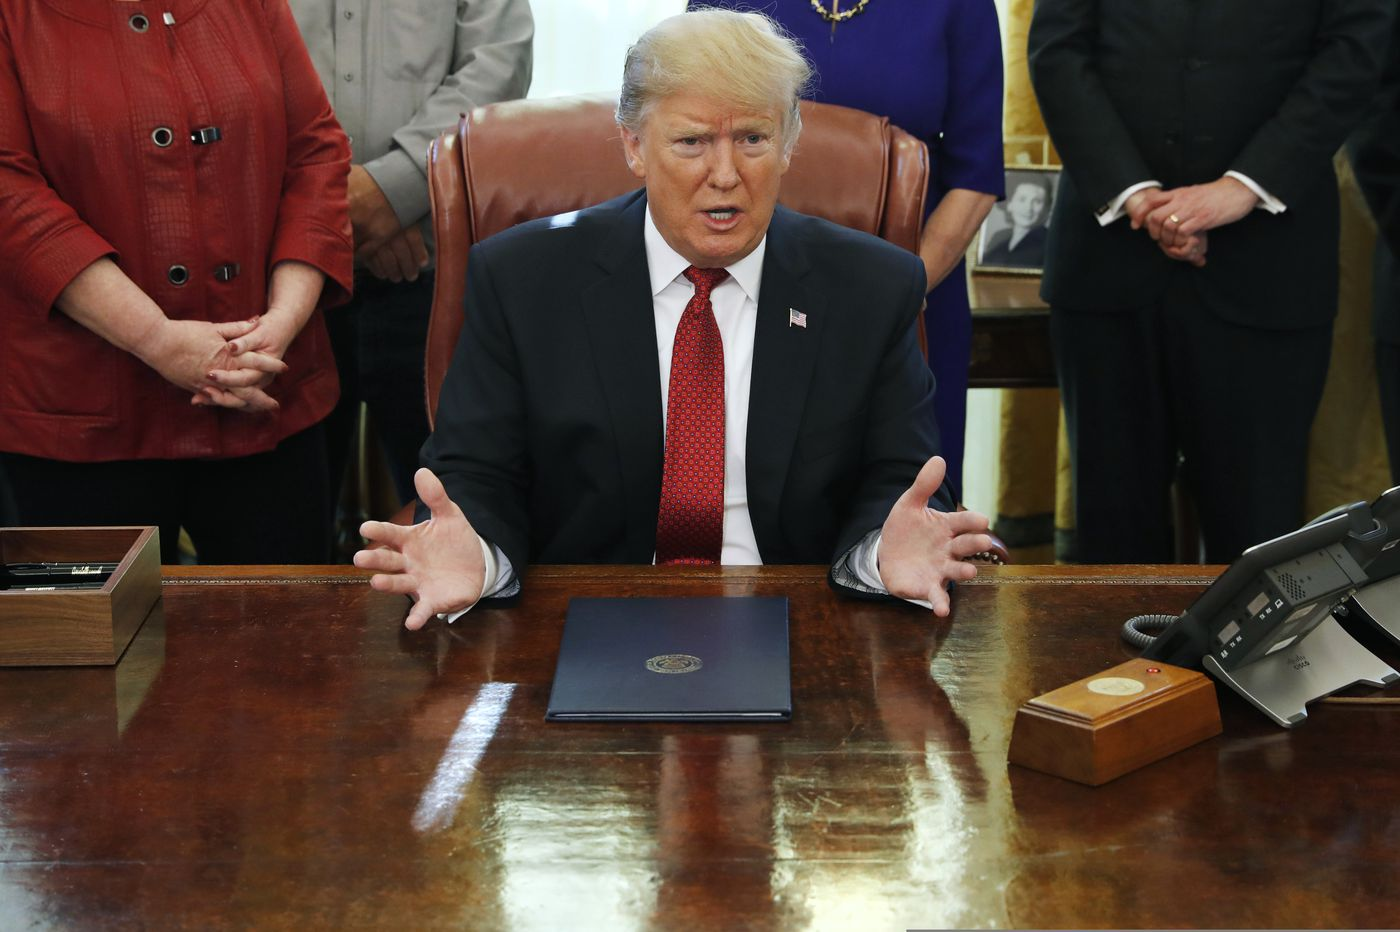 Getting closer to declaring a national emergency: Donald Trump